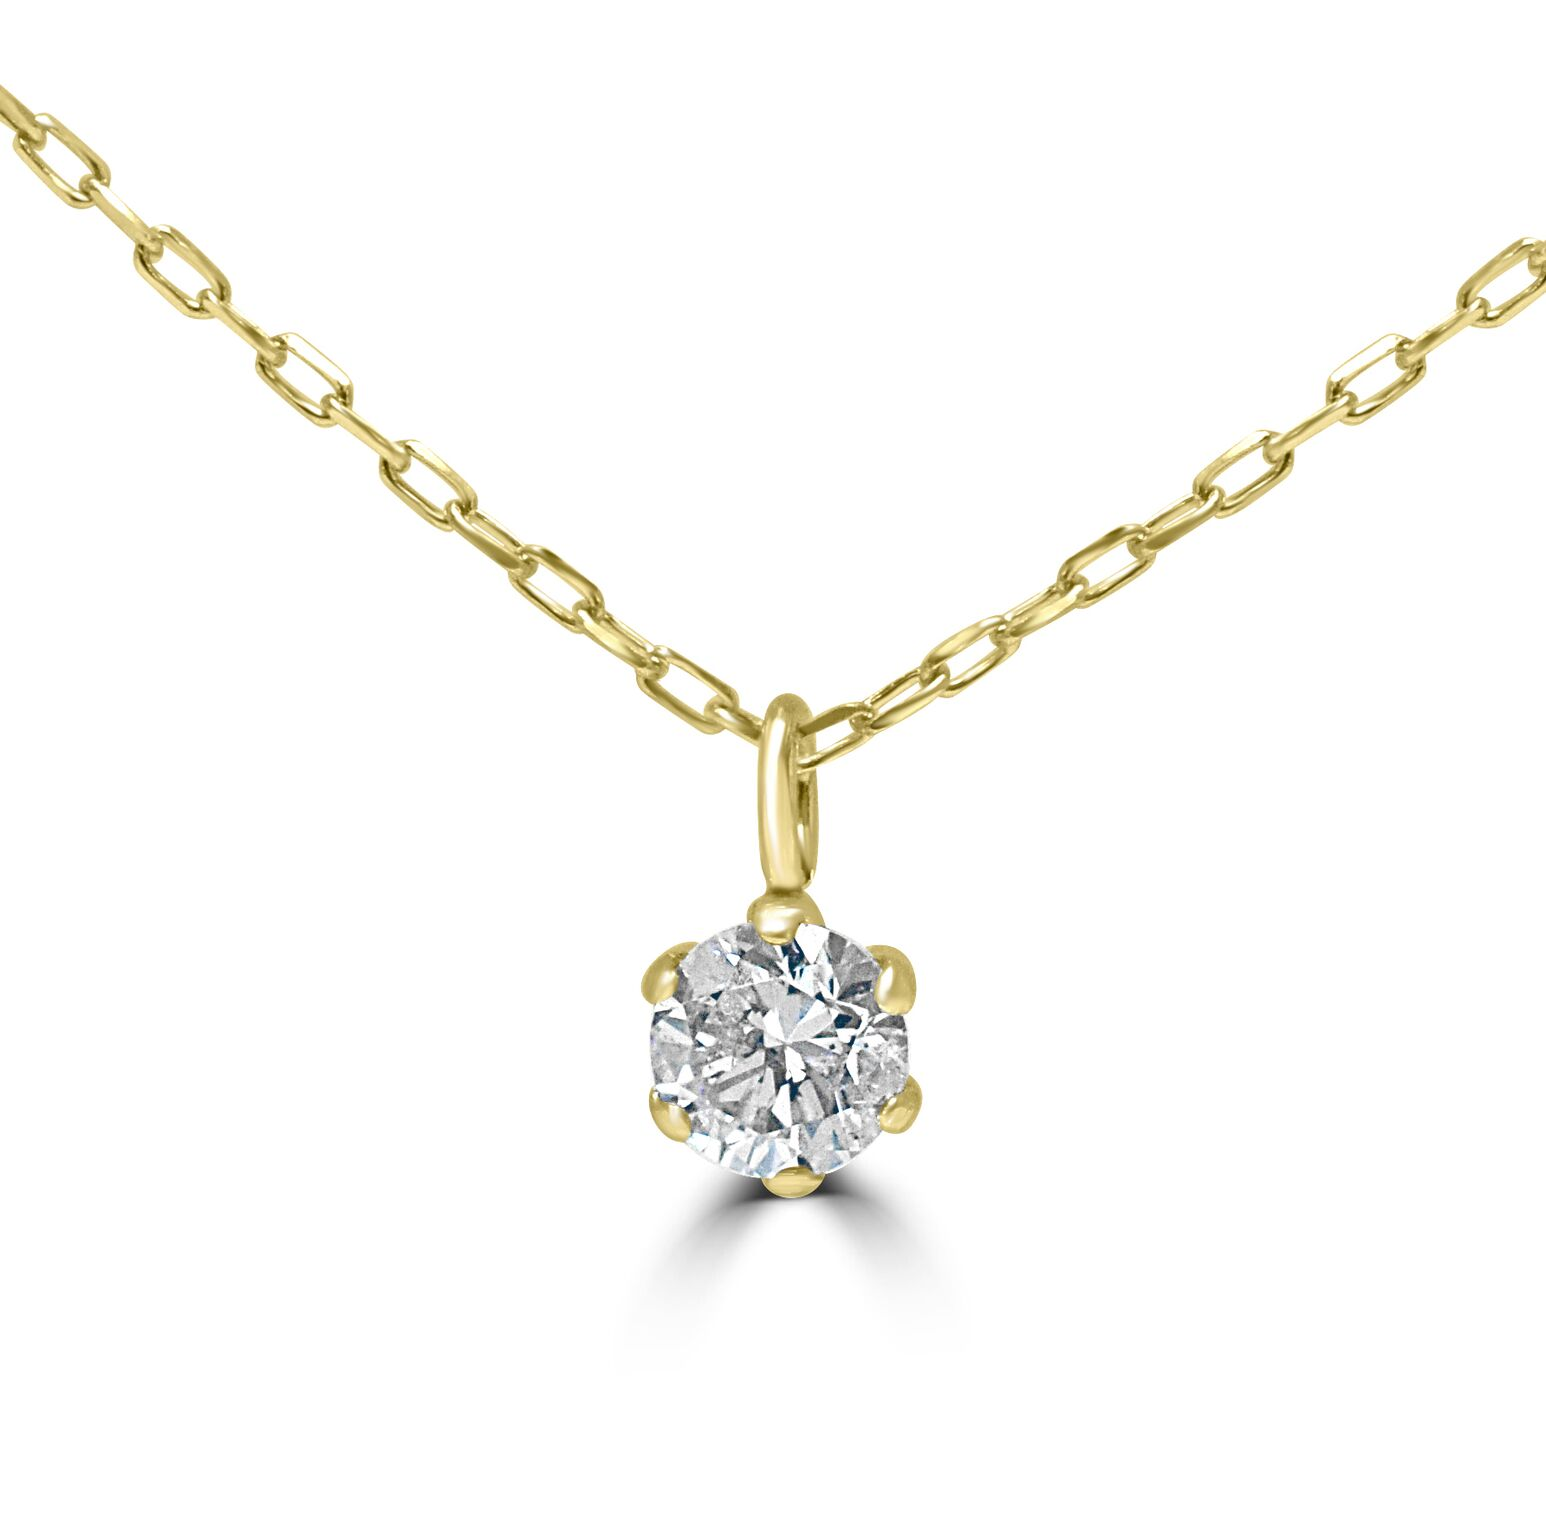 Cute Diamond Pendant Necklace In 18ct Yellow Gold With 16 Inch Chain RRP £375